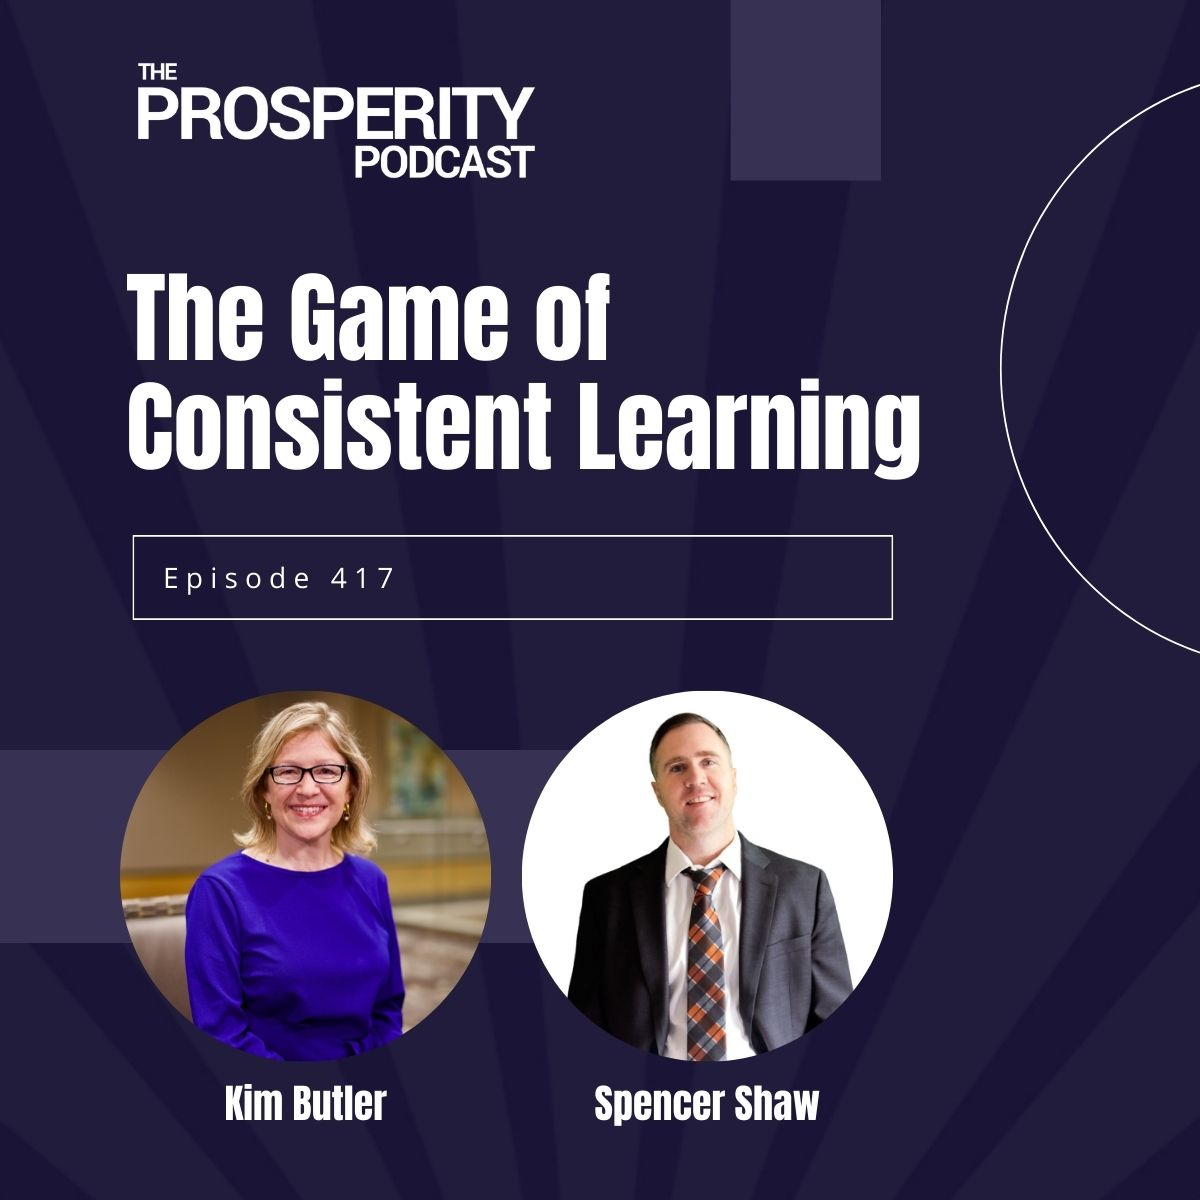 The Game of Consistent Learning